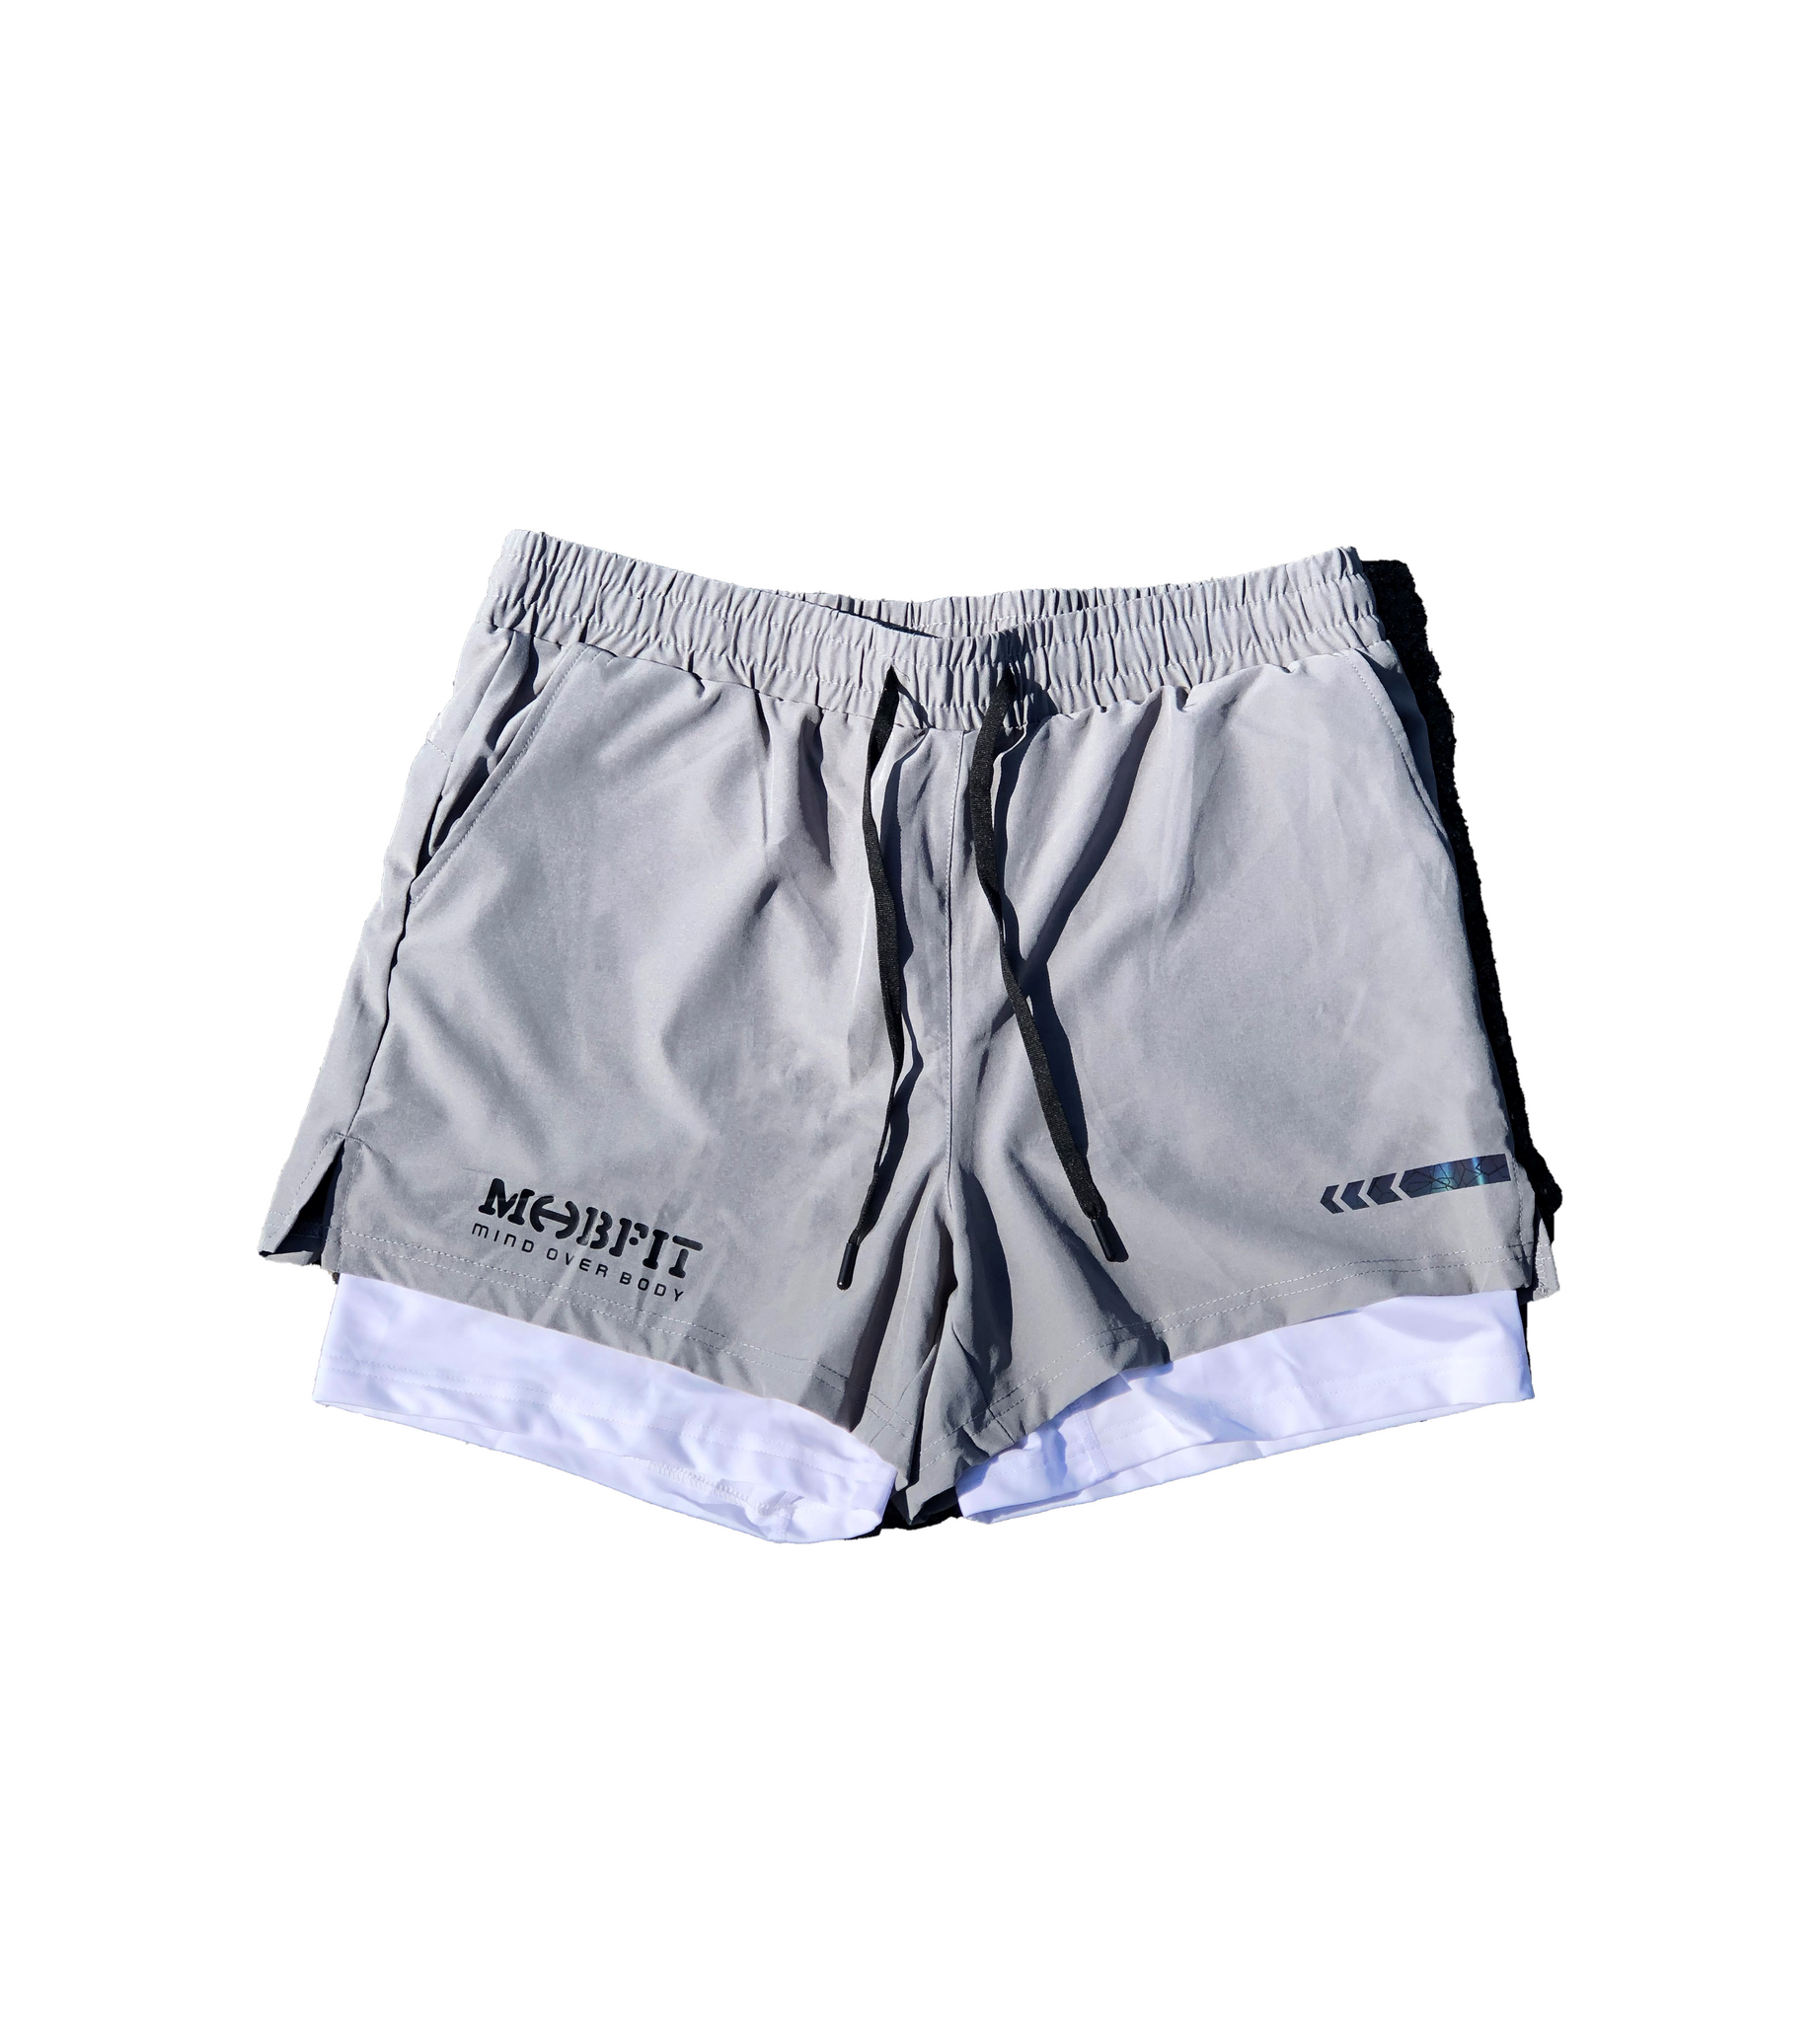 2020 Compression Marathon Running Shorts